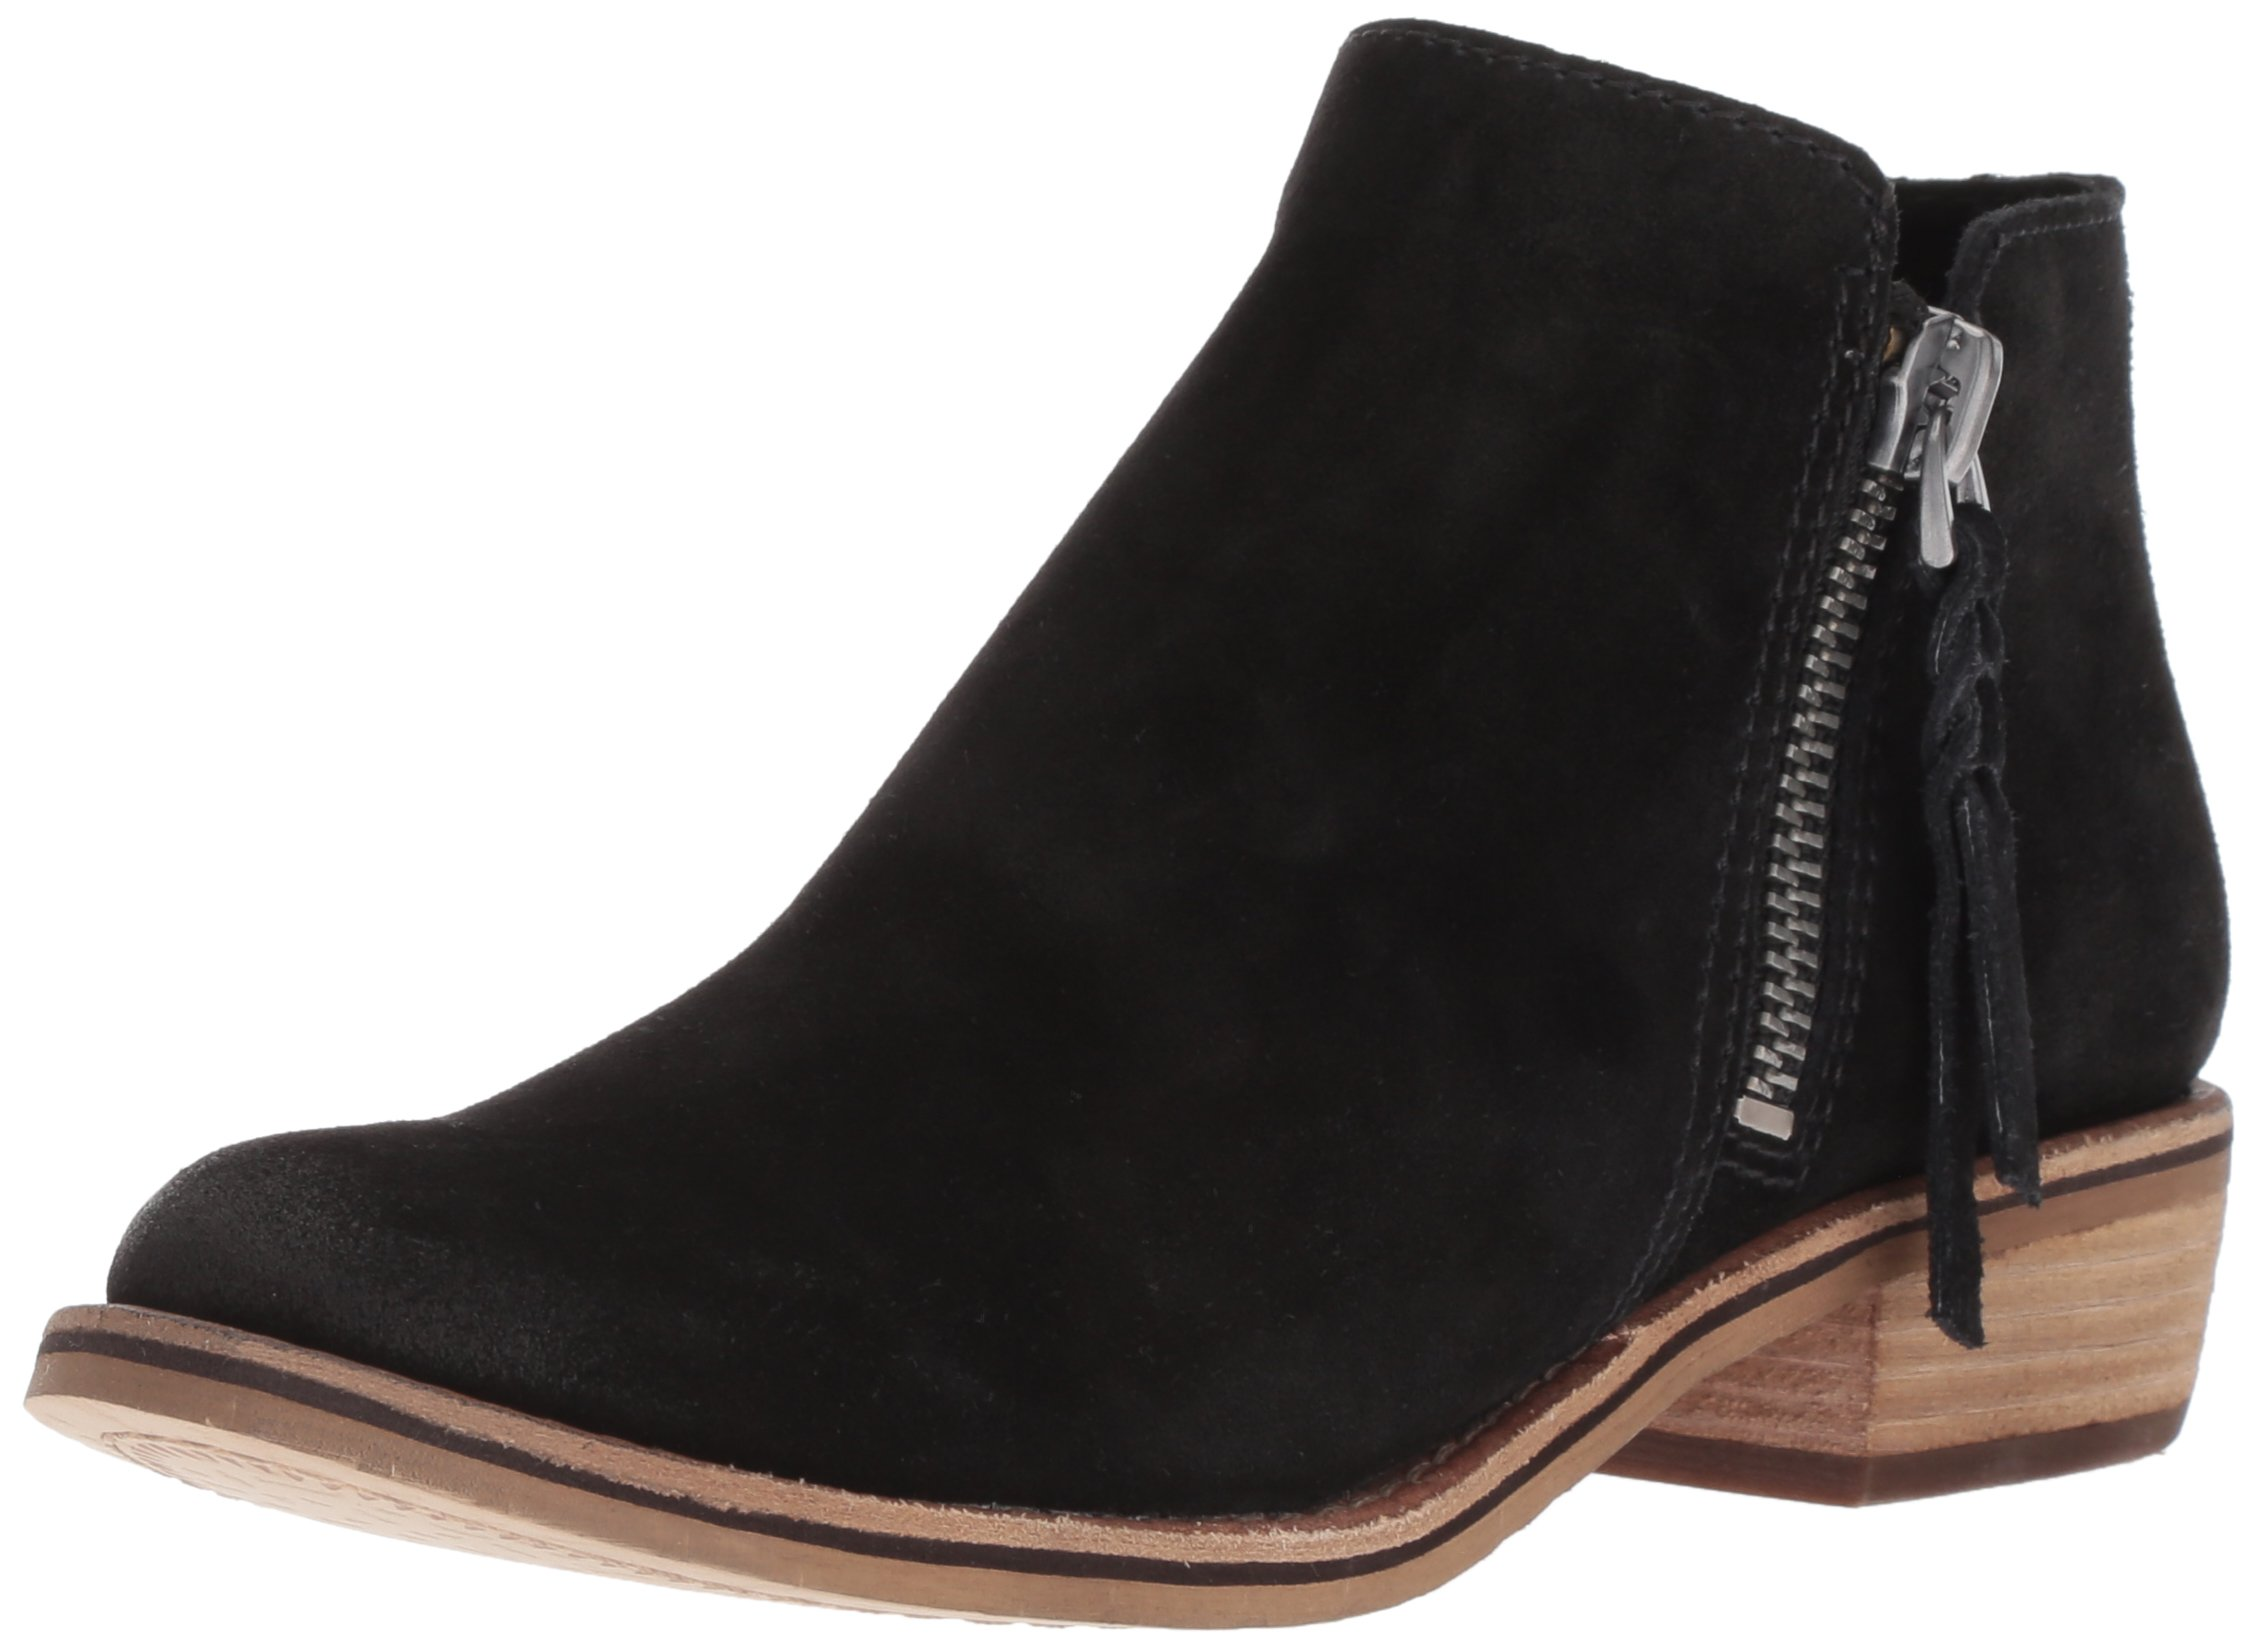 Dolce Vita Women's Sutton Ankle Boot, Black Suede, 9 M US